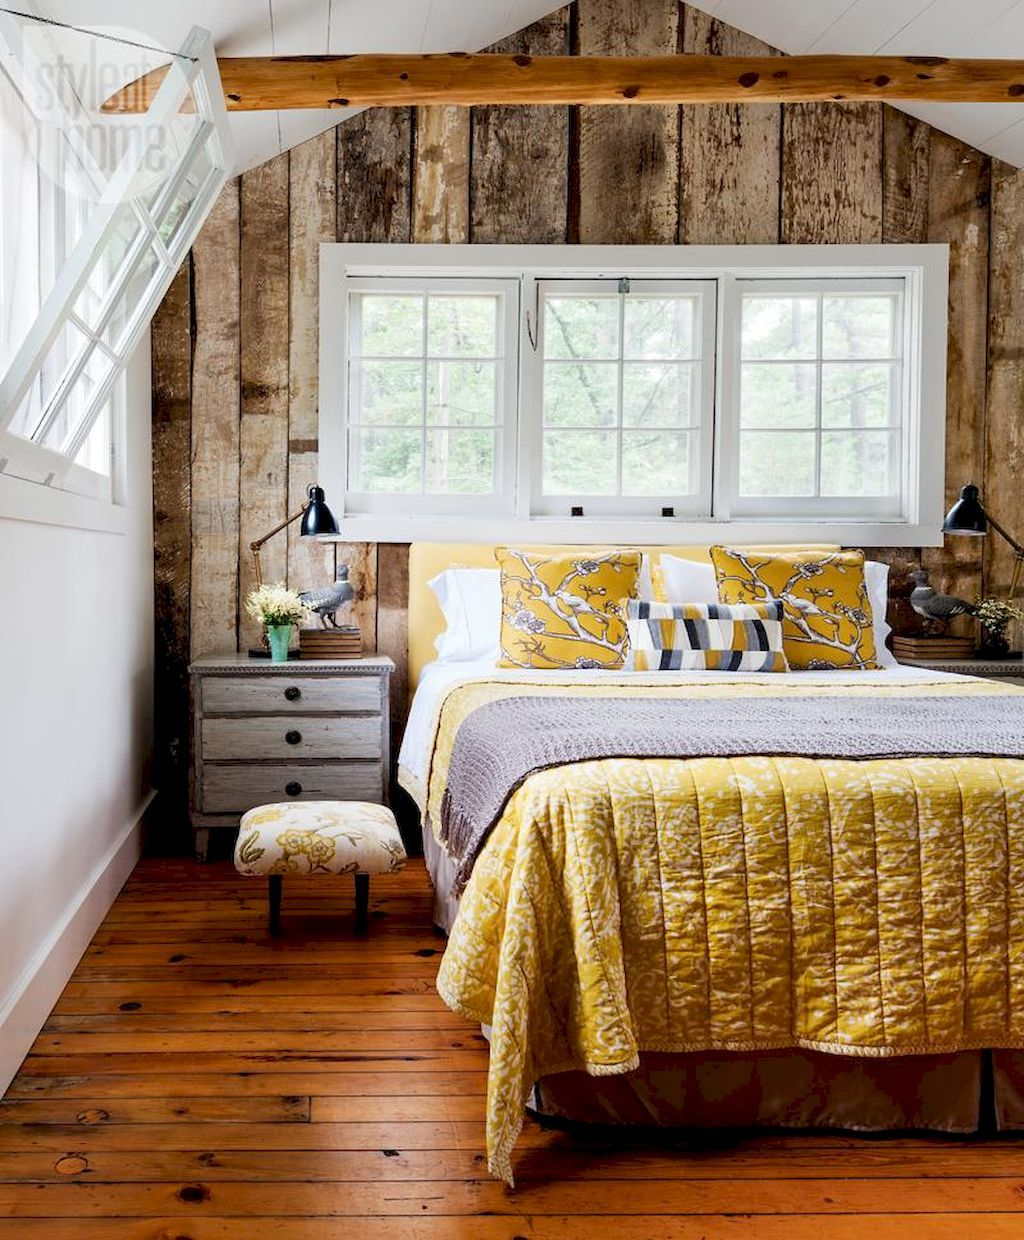 60 Cool Eclectic Master Bedroom Decor Ideas And Remodel | Pinterest Master Bedroom Decorating Ideas Eclectic on eclectic backyard decorating ideas, eclectic teen bedroom, eclectic master bathroom, eclectic den decorating ideas, superhero boys bedroom decorating ideas, eclectic kitchen decorating ideas, eclectic interior decorating ideas, eclectic bedroom furniture,